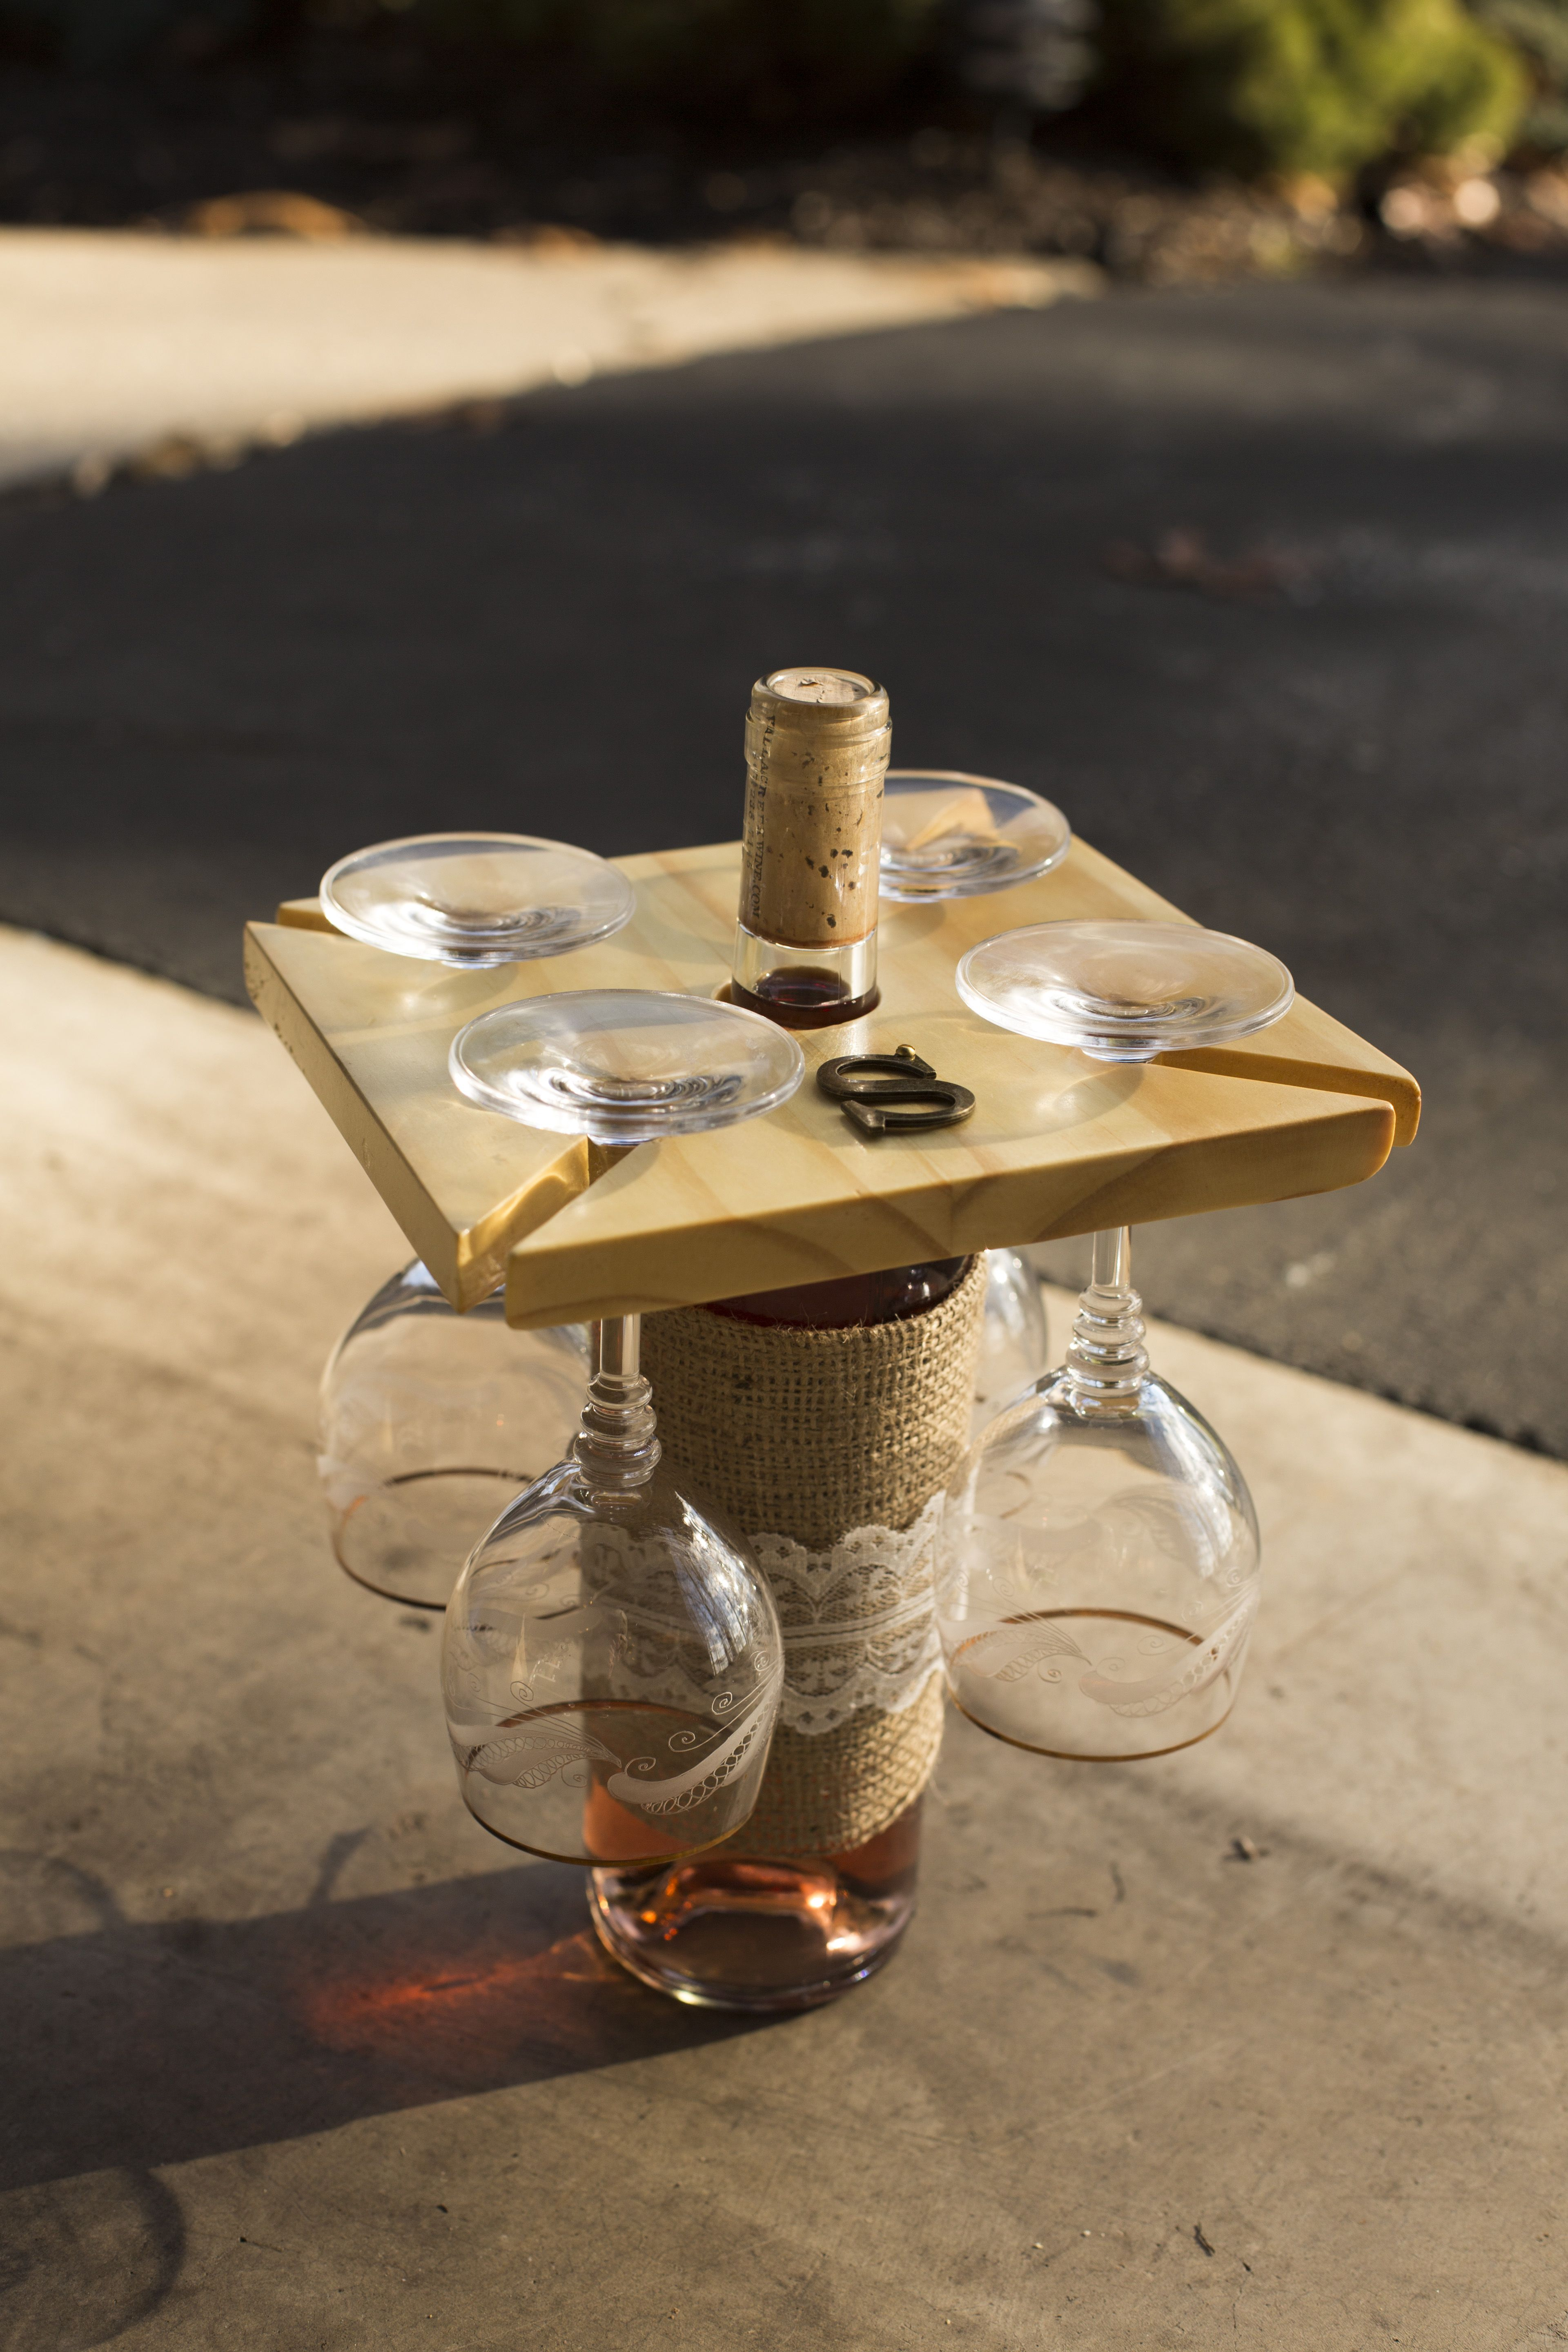 How to make a wine glass holder wooden wine glasses diy